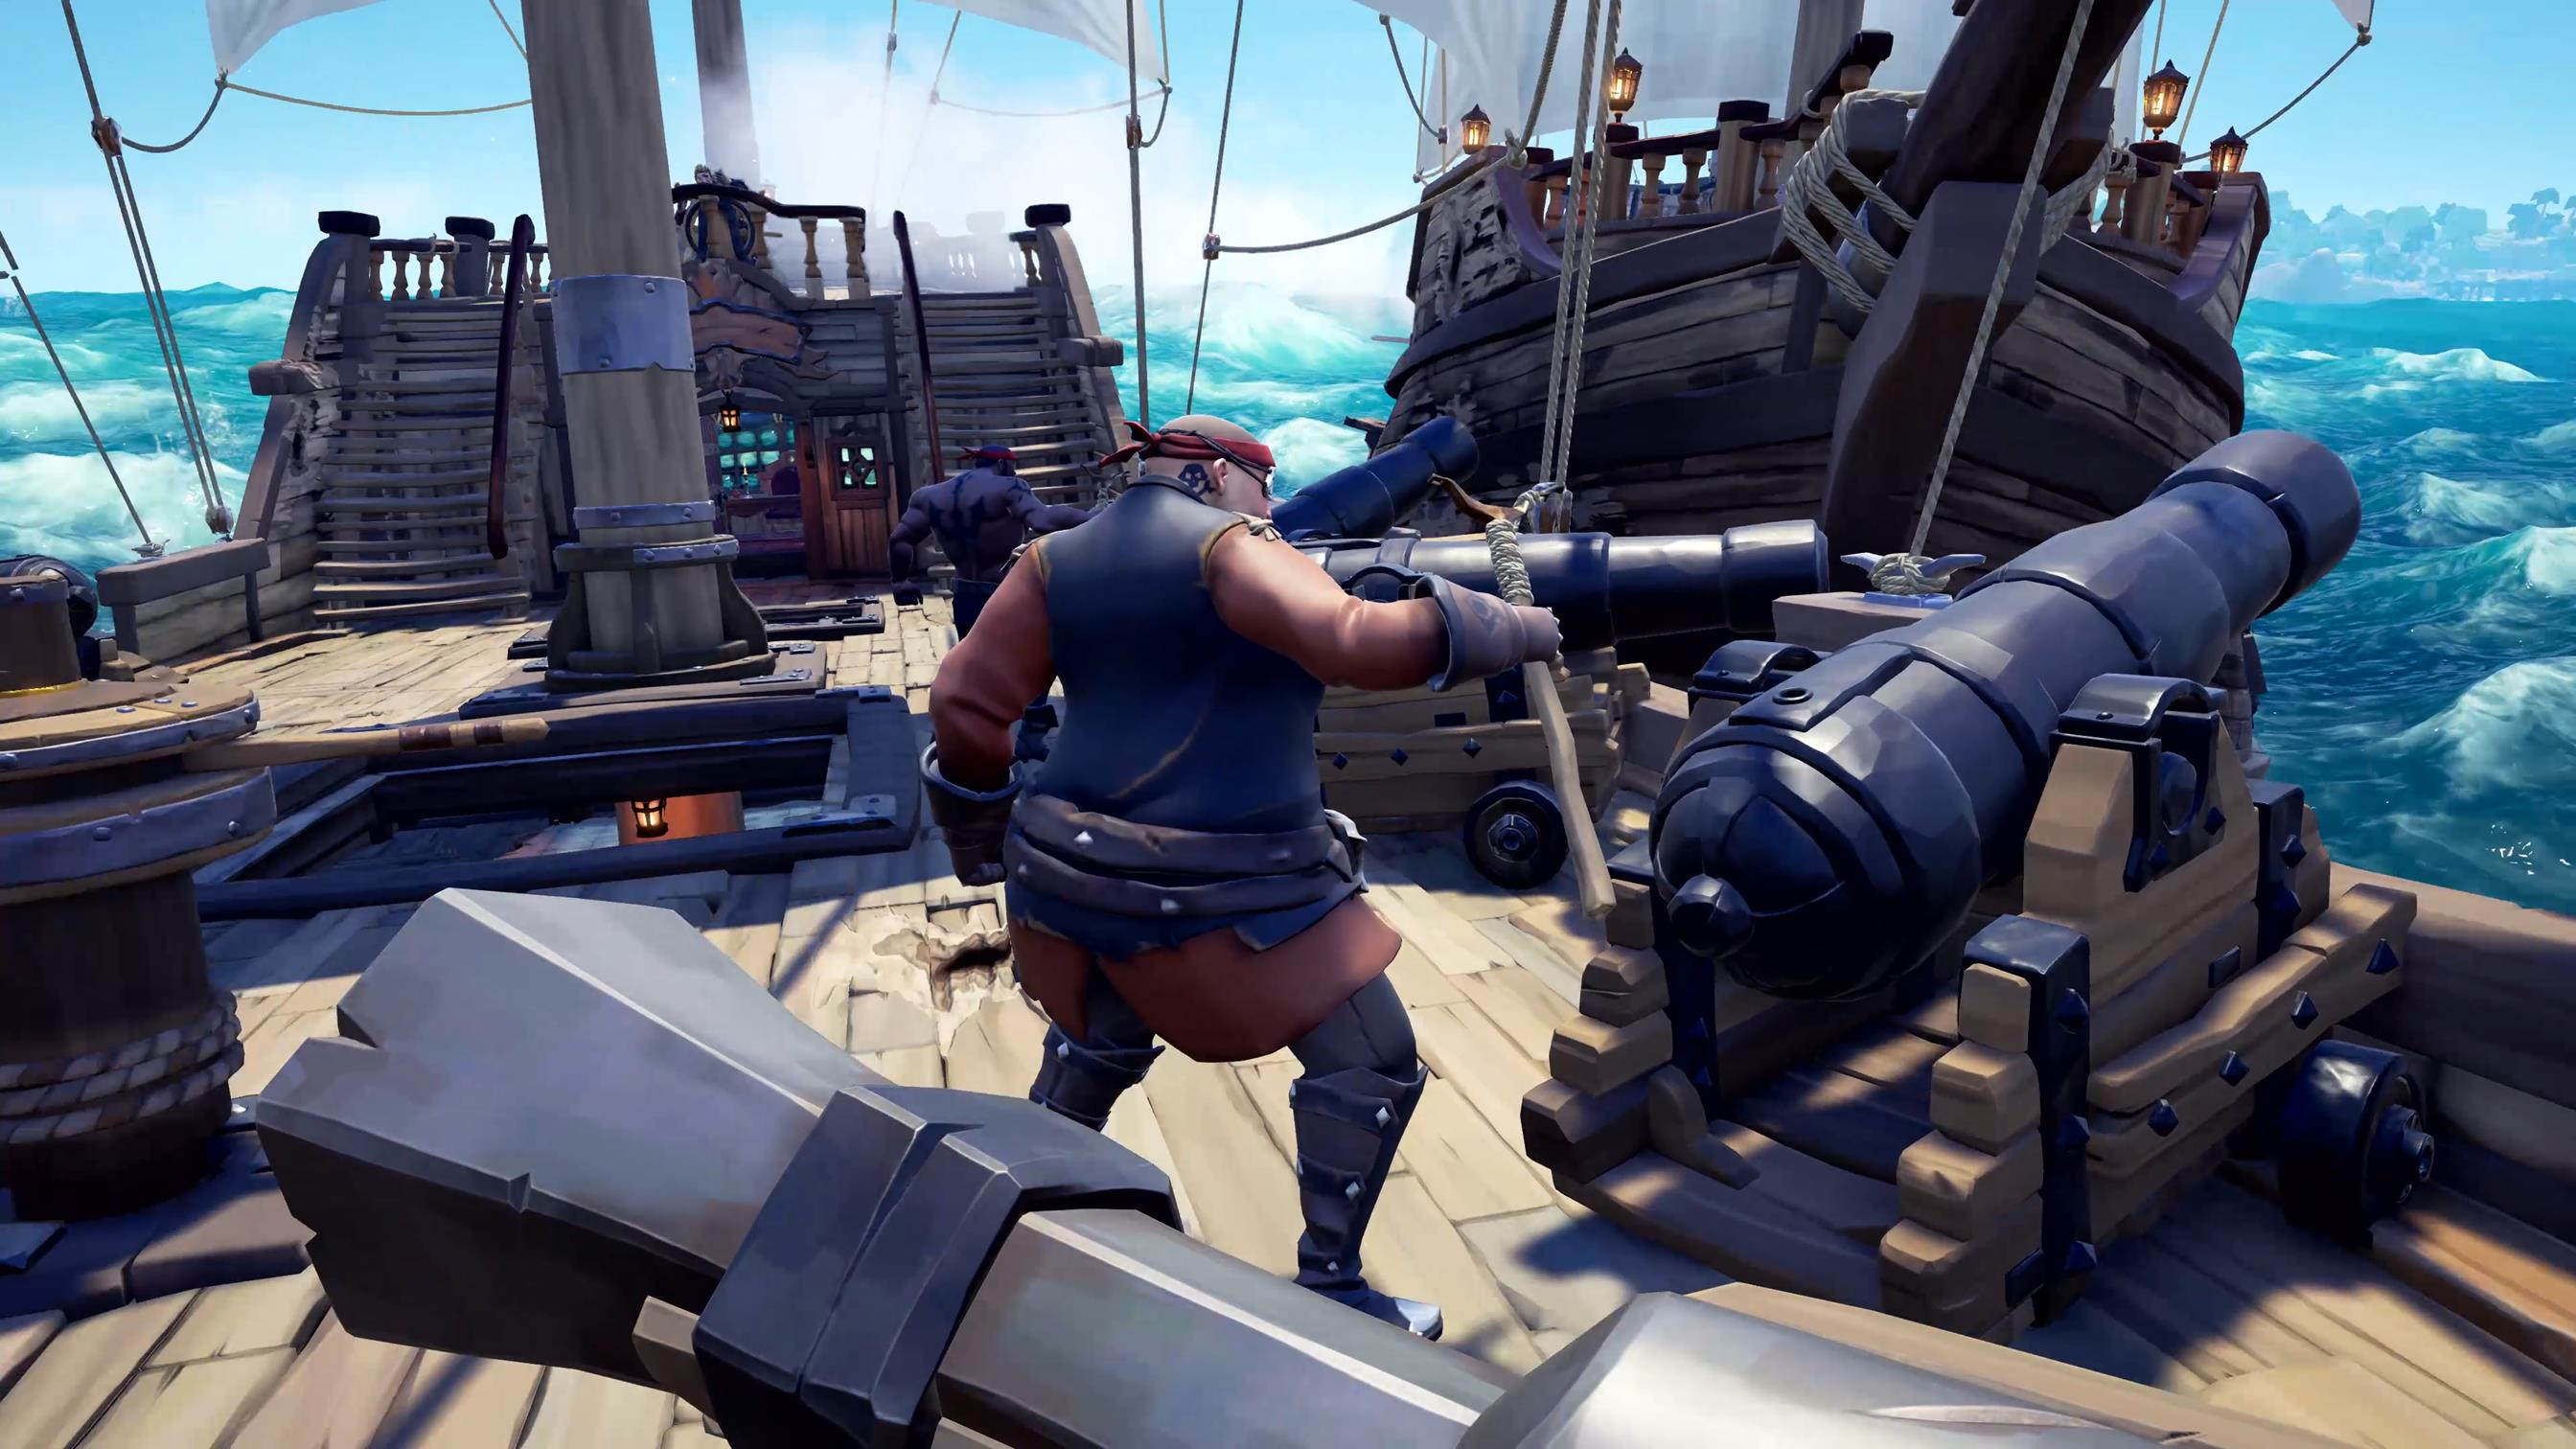 Sea of Thieves: how to get on your ship and how to do quests - VG247